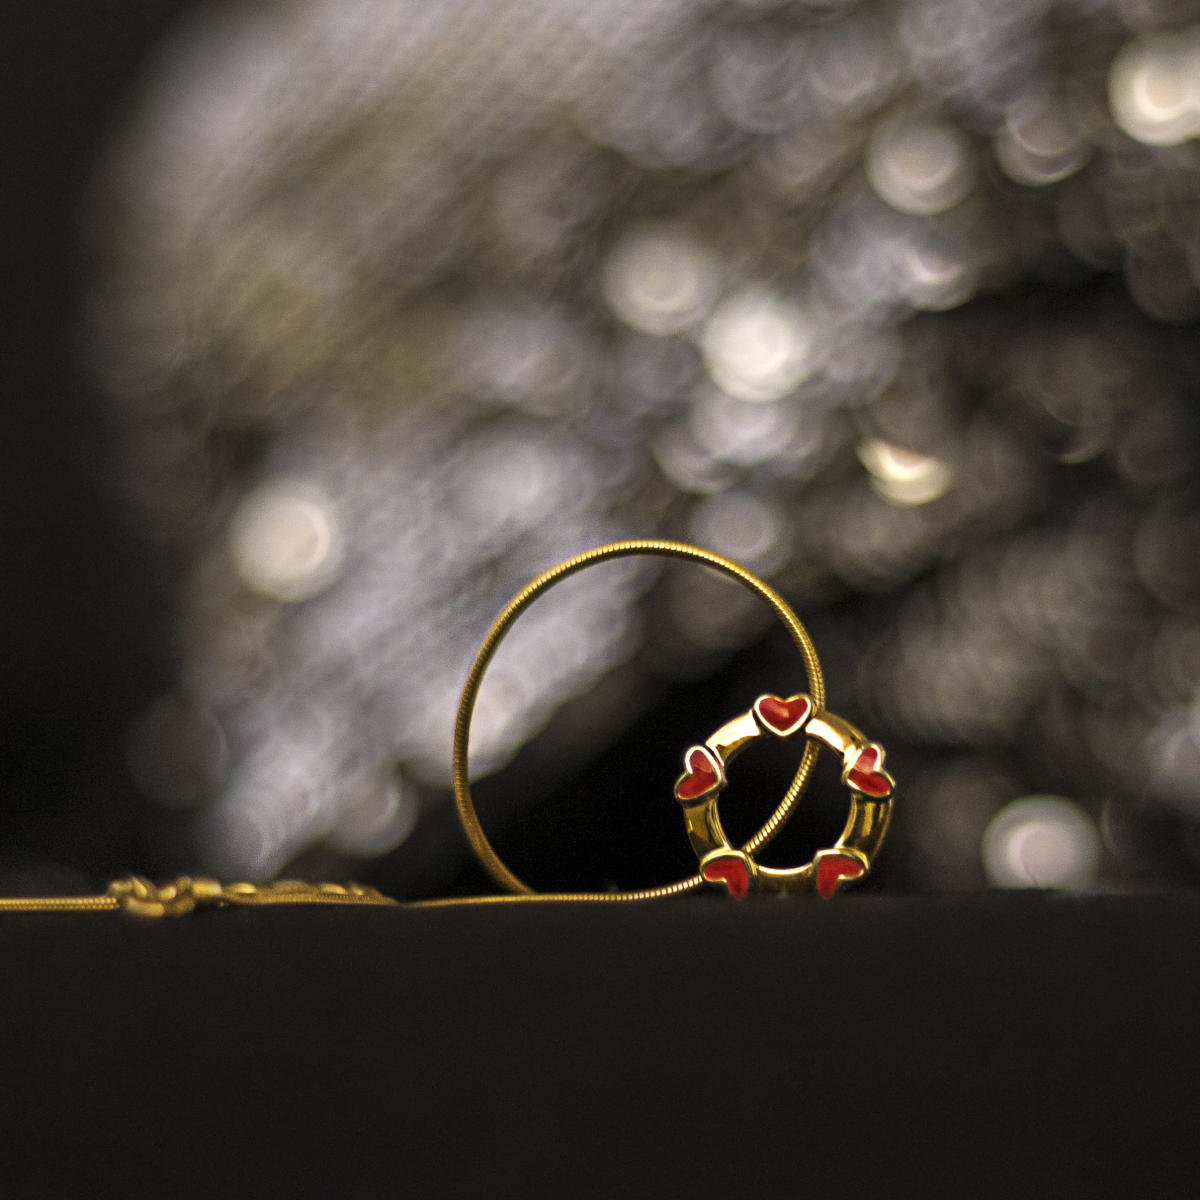 Whether you are preparing to pop the question on Valentine's Day or just thinking of gifting her something special, go for either a trendy ring in gold, diamond or gemstones.